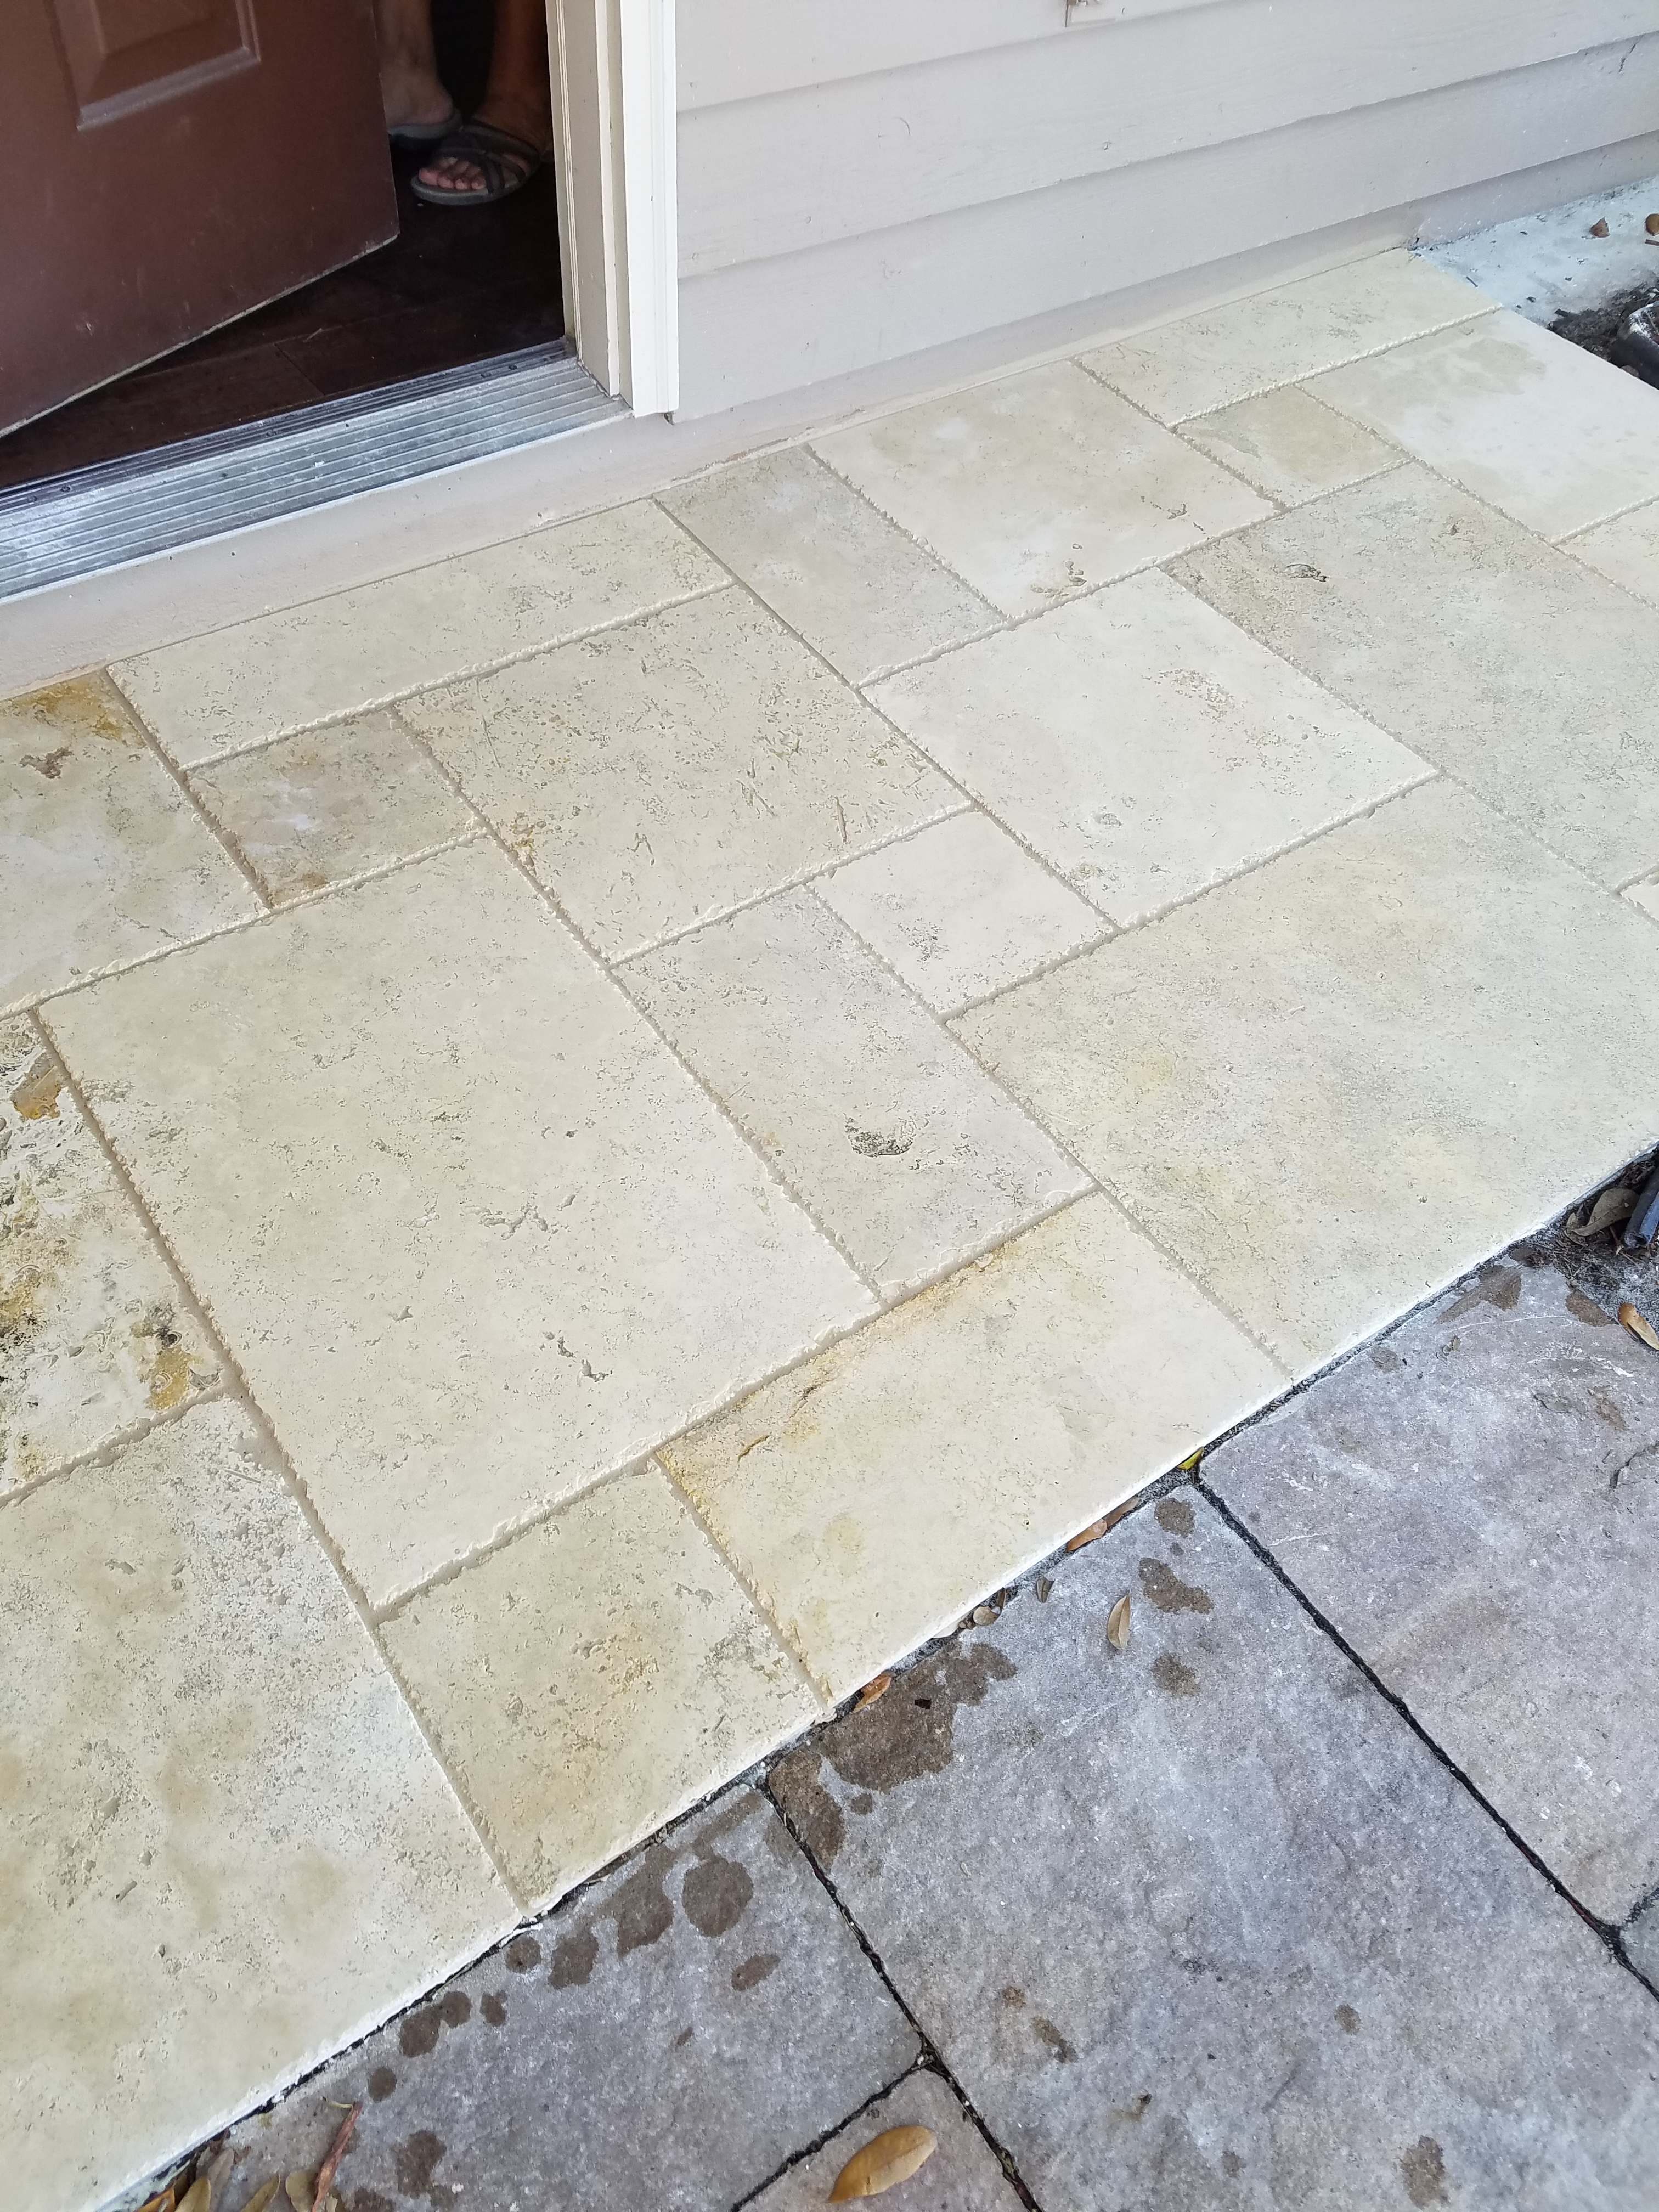 News from jacksonville painting flooring contractor part 7 filed under flooring tile flooring by aaa residential rehab tuesday april 18th 2017 dailygadgetfo Choice Image